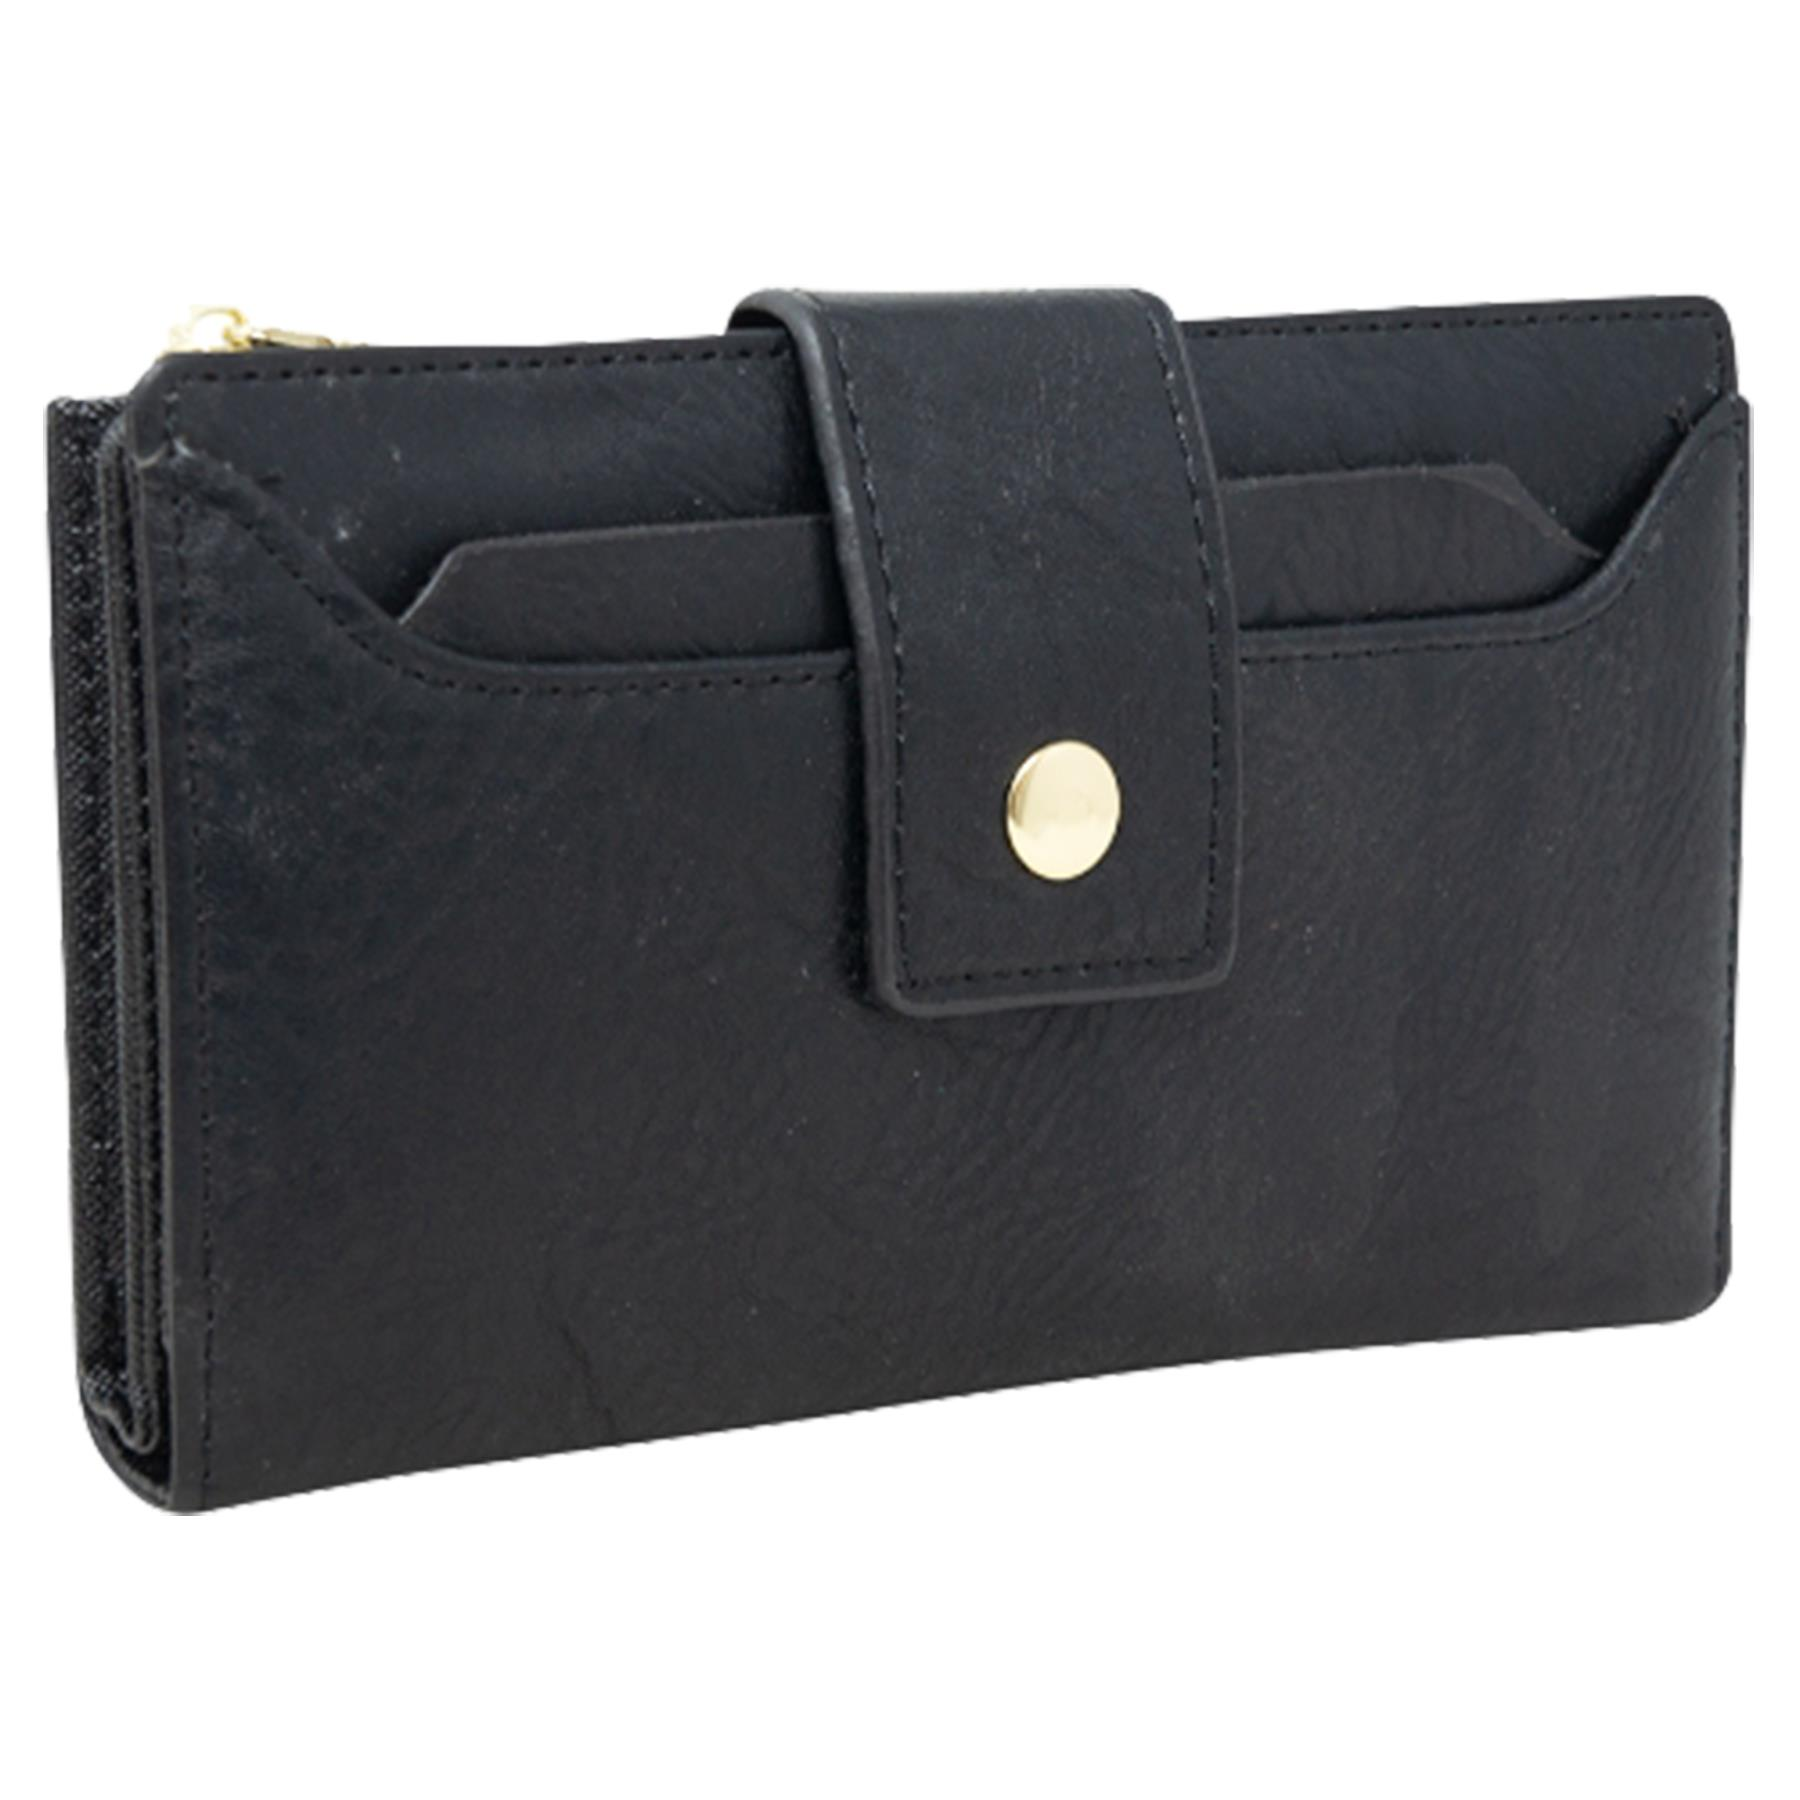 New-Soft-Plain-Synthetic-Leather-Card-Organiser-Ladies-Long-Purse thumbnail 3